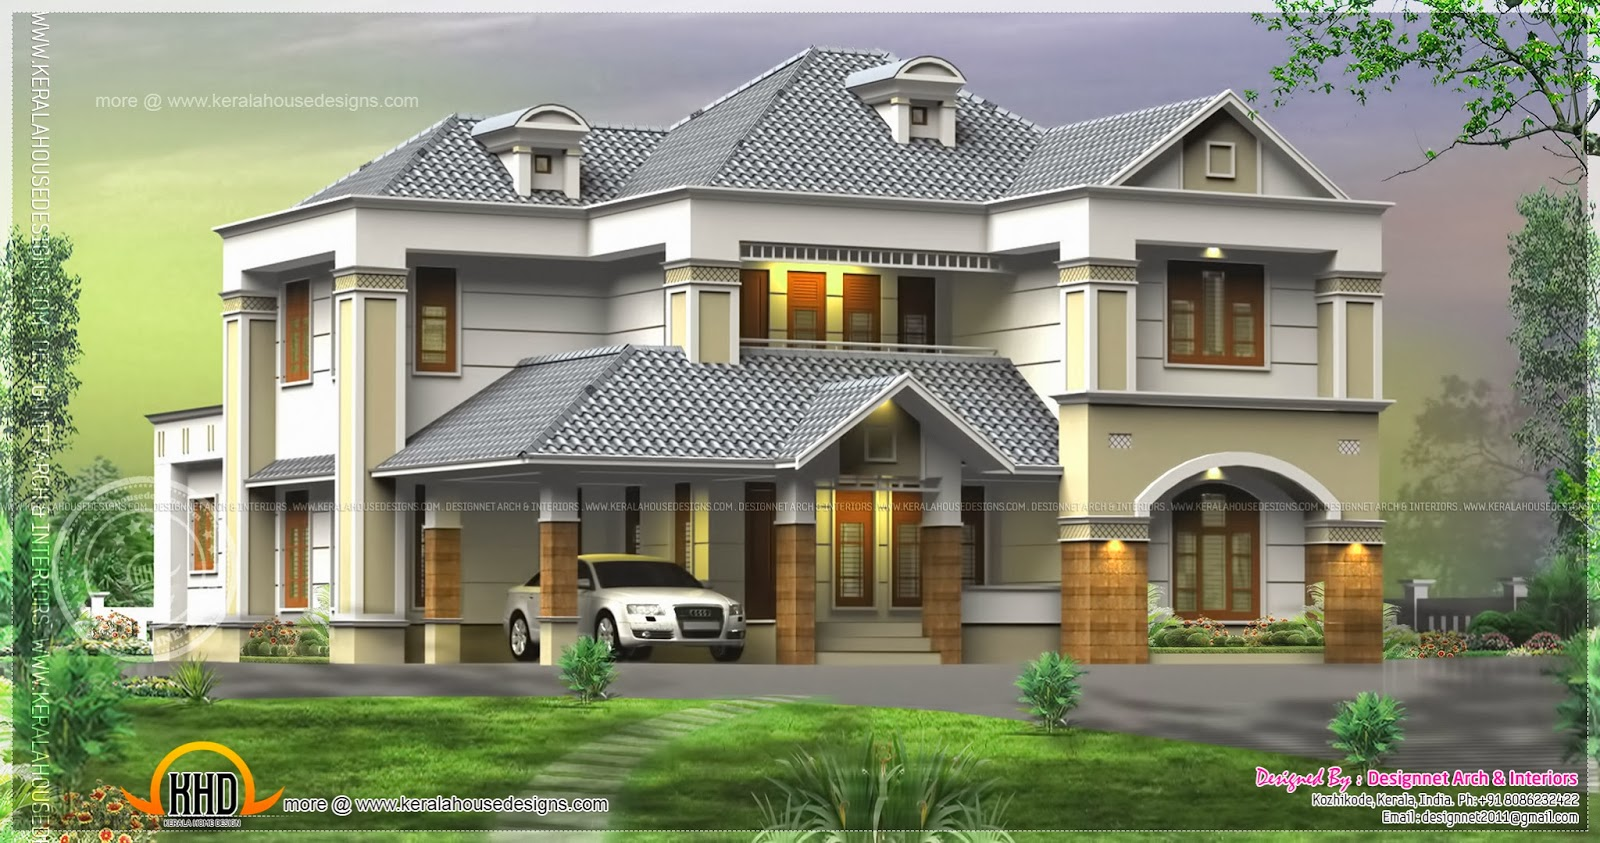 3d Rendering Of 241 Square Meter House Home Kerala Plans